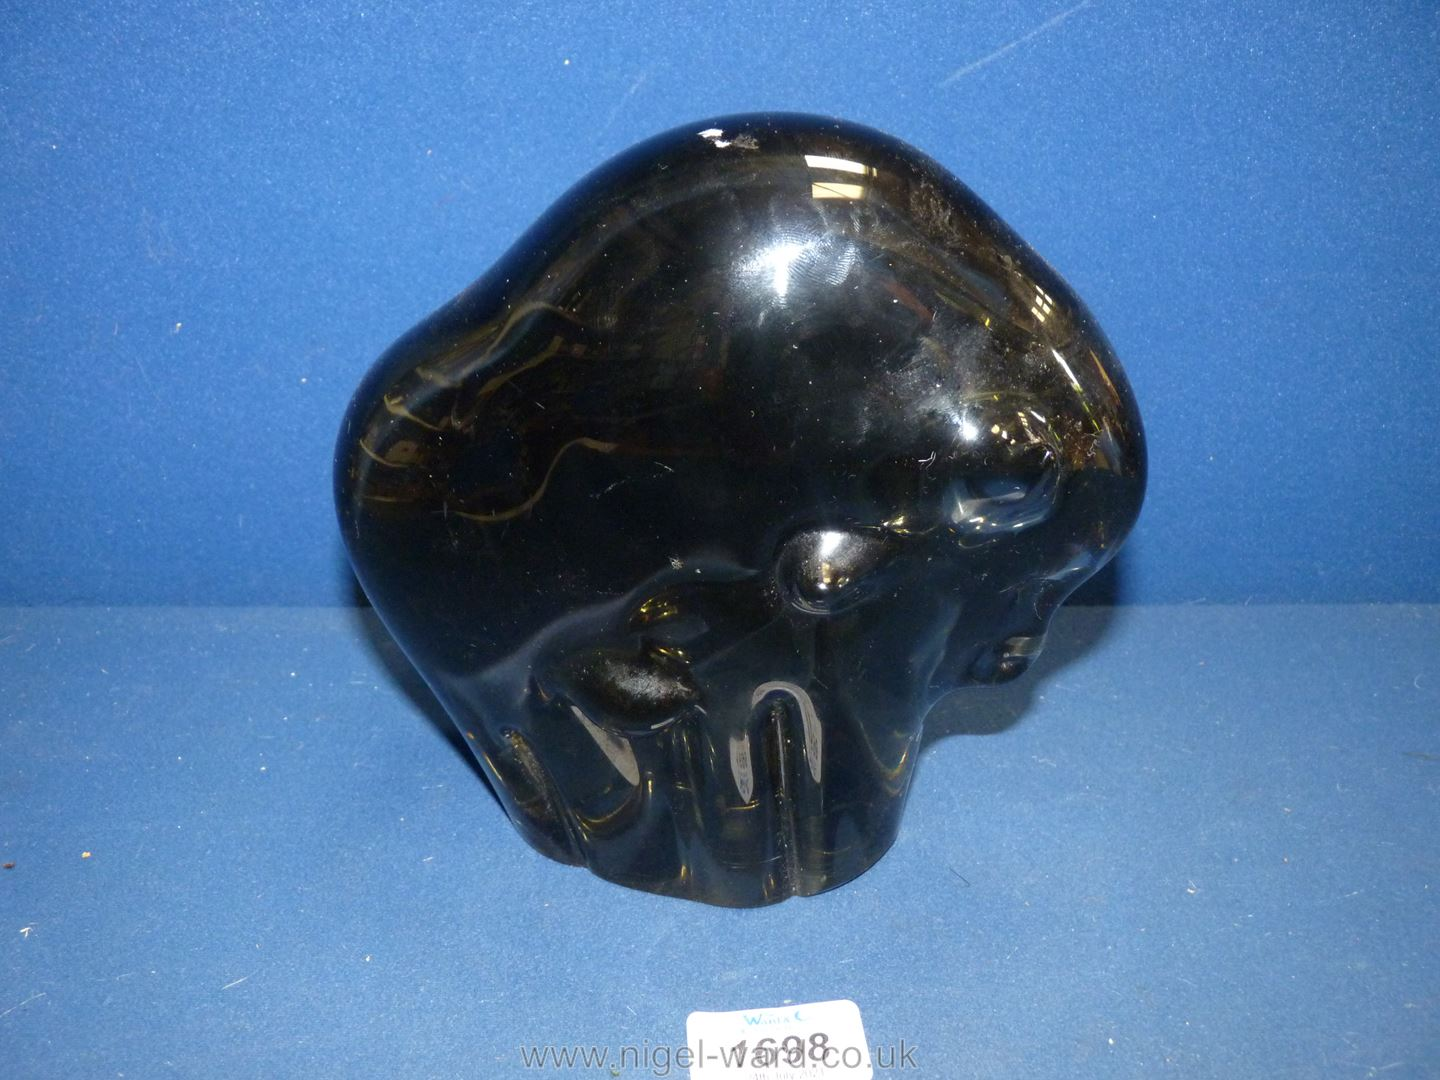 A large glass Bull paperweight, 7 1/2'' high x 8'' wide. - Image 2 of 2